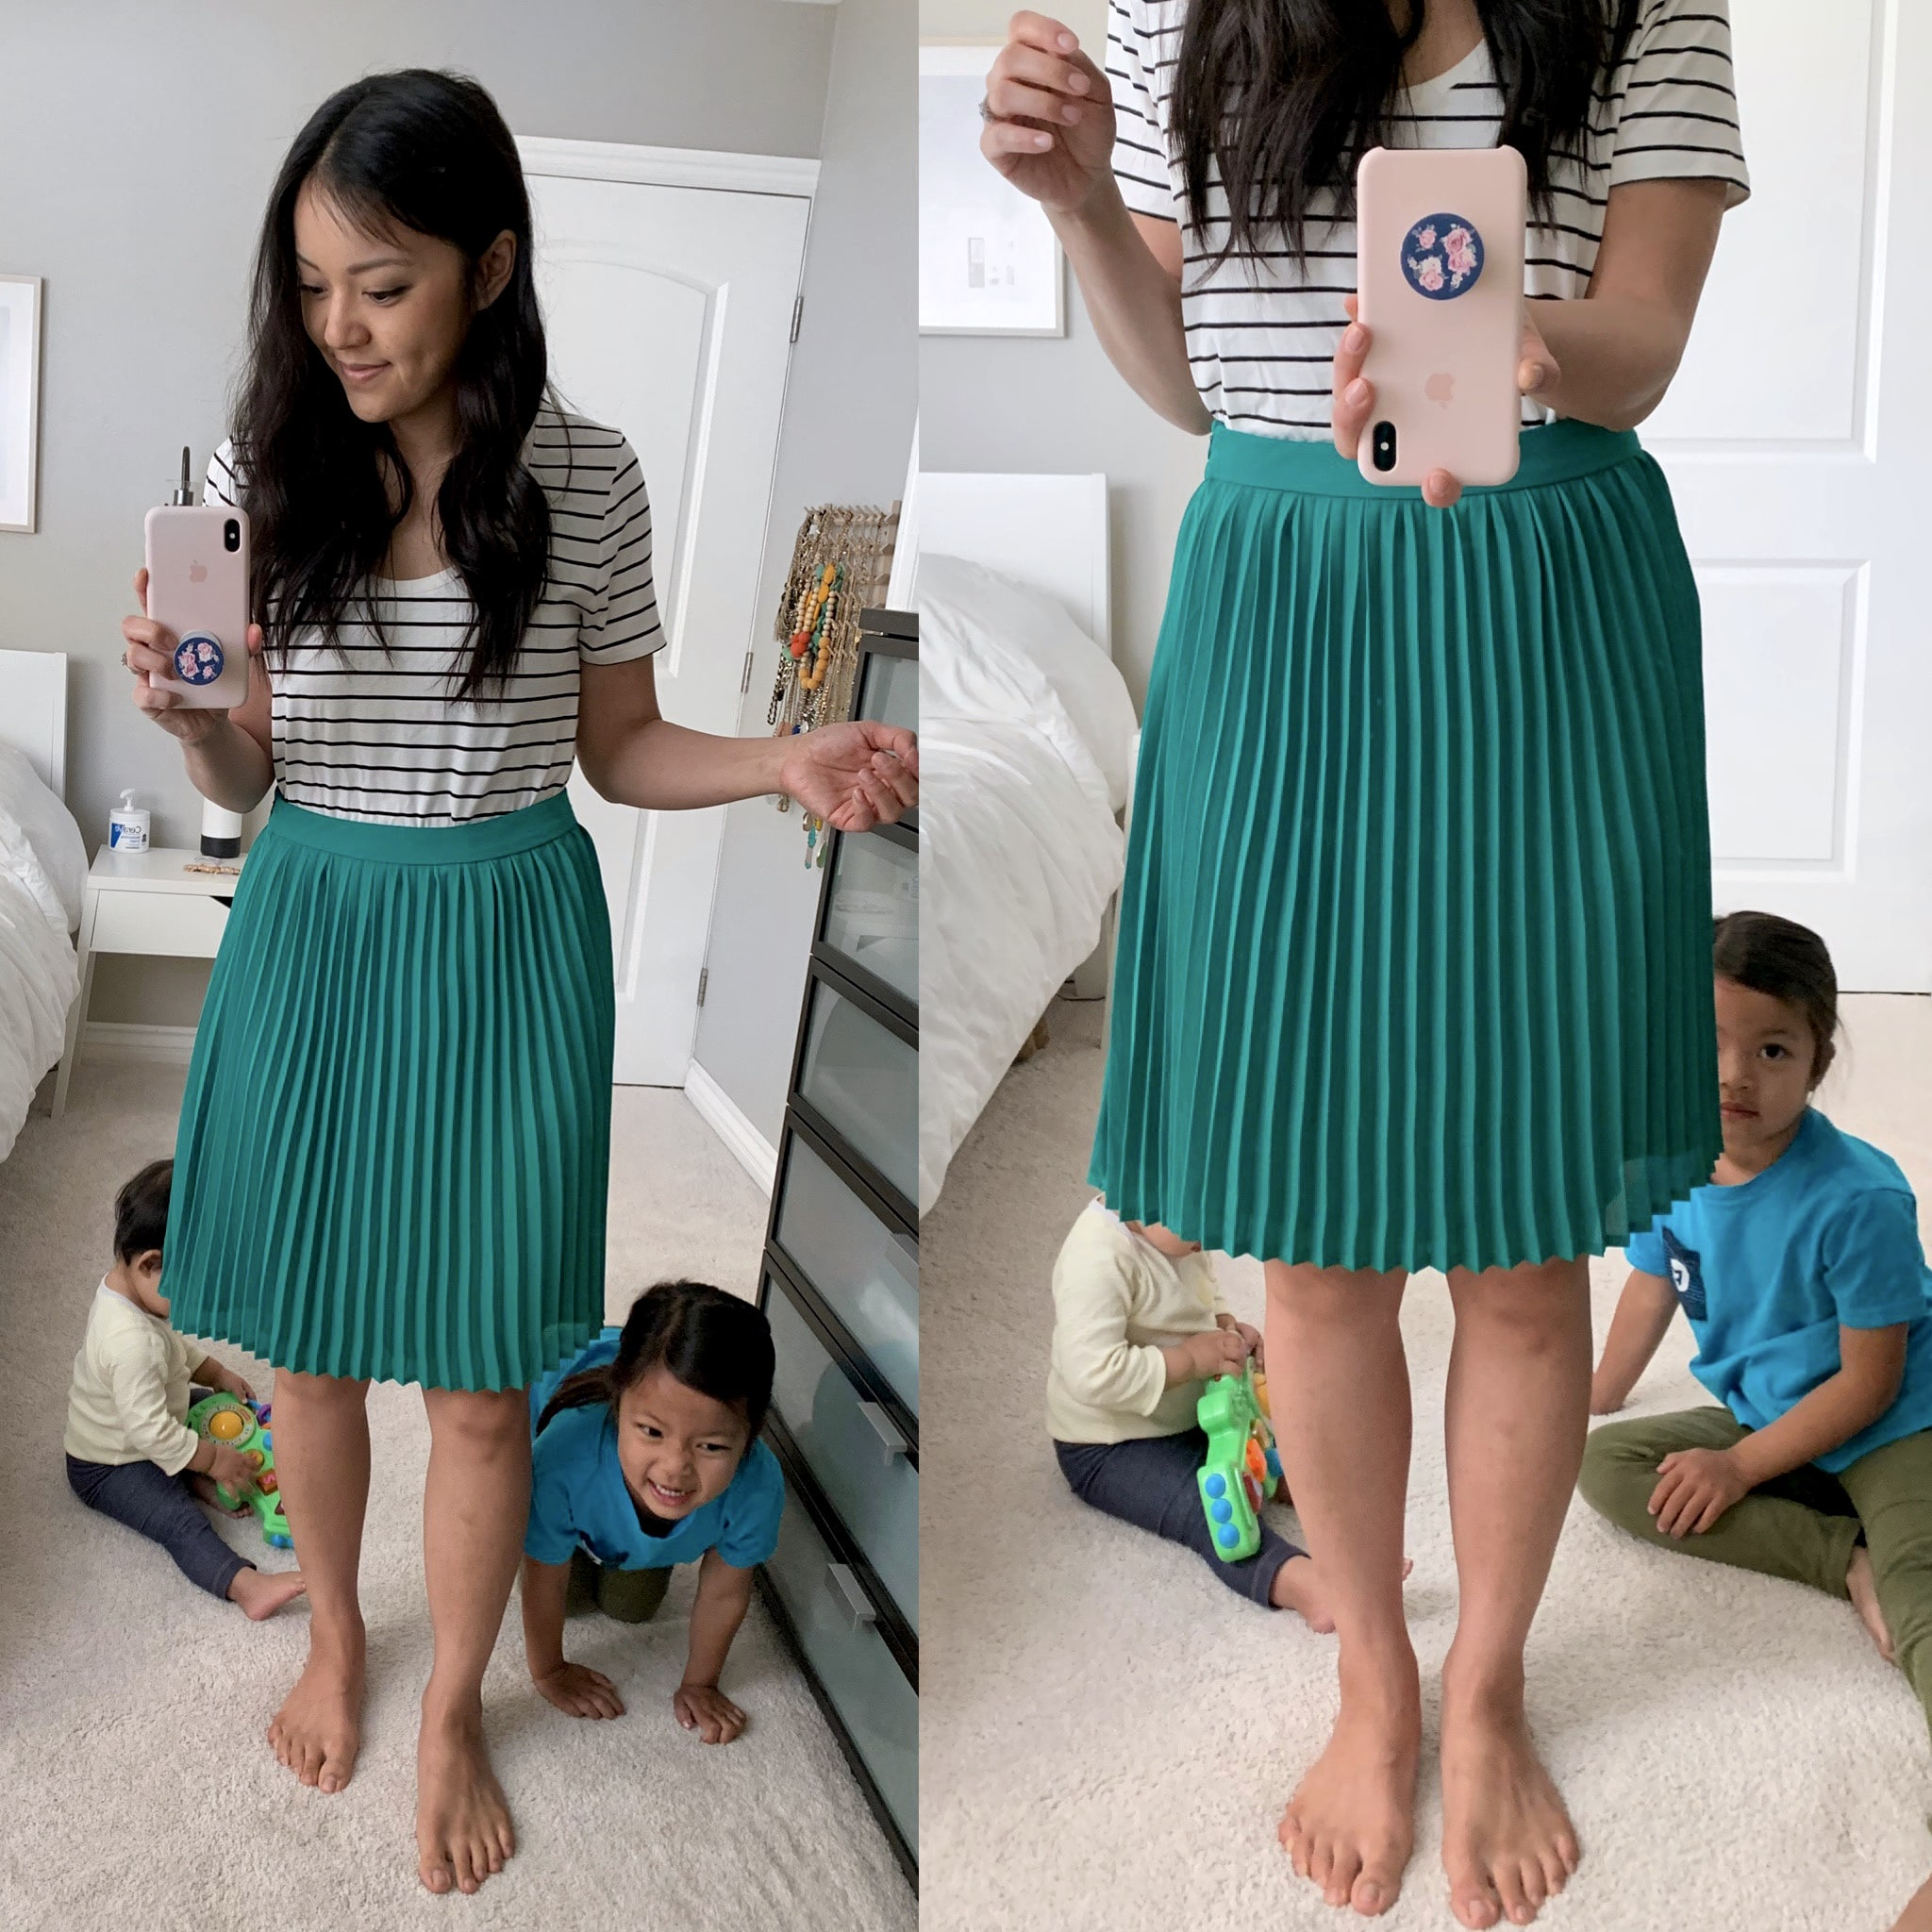 green skirt + striped tee